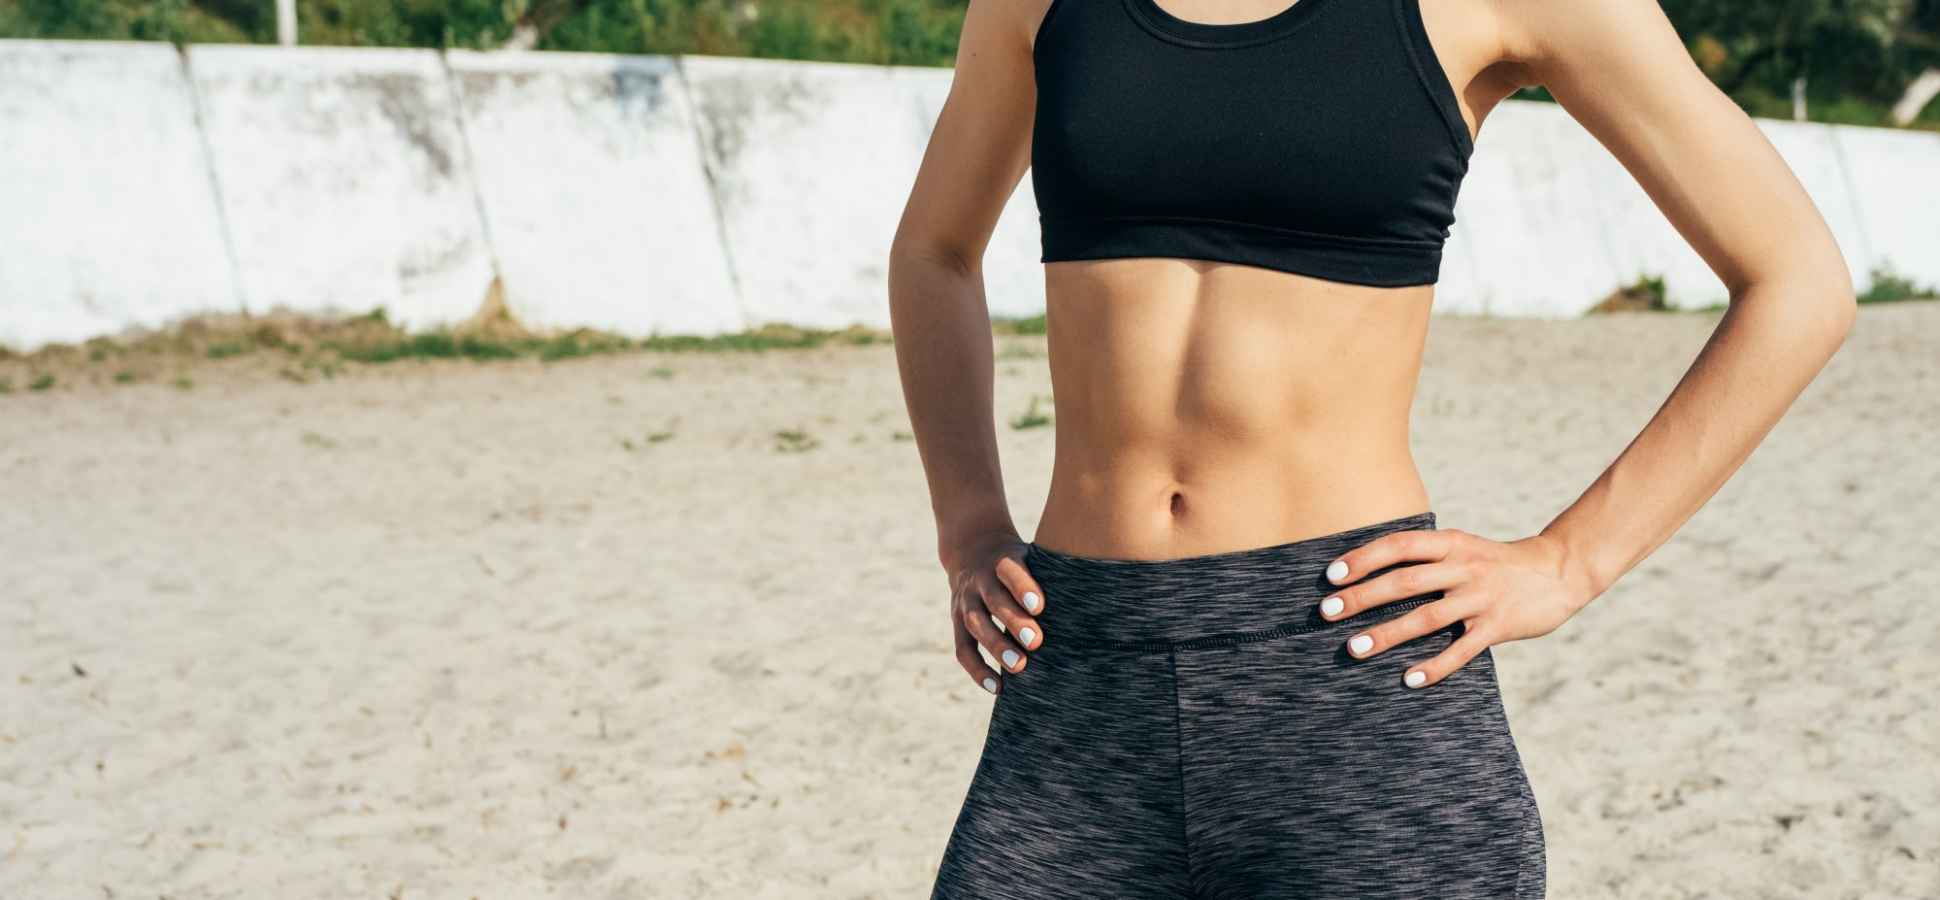 Science Says This New Wearable Can Lower Body Fat by Up to 16%